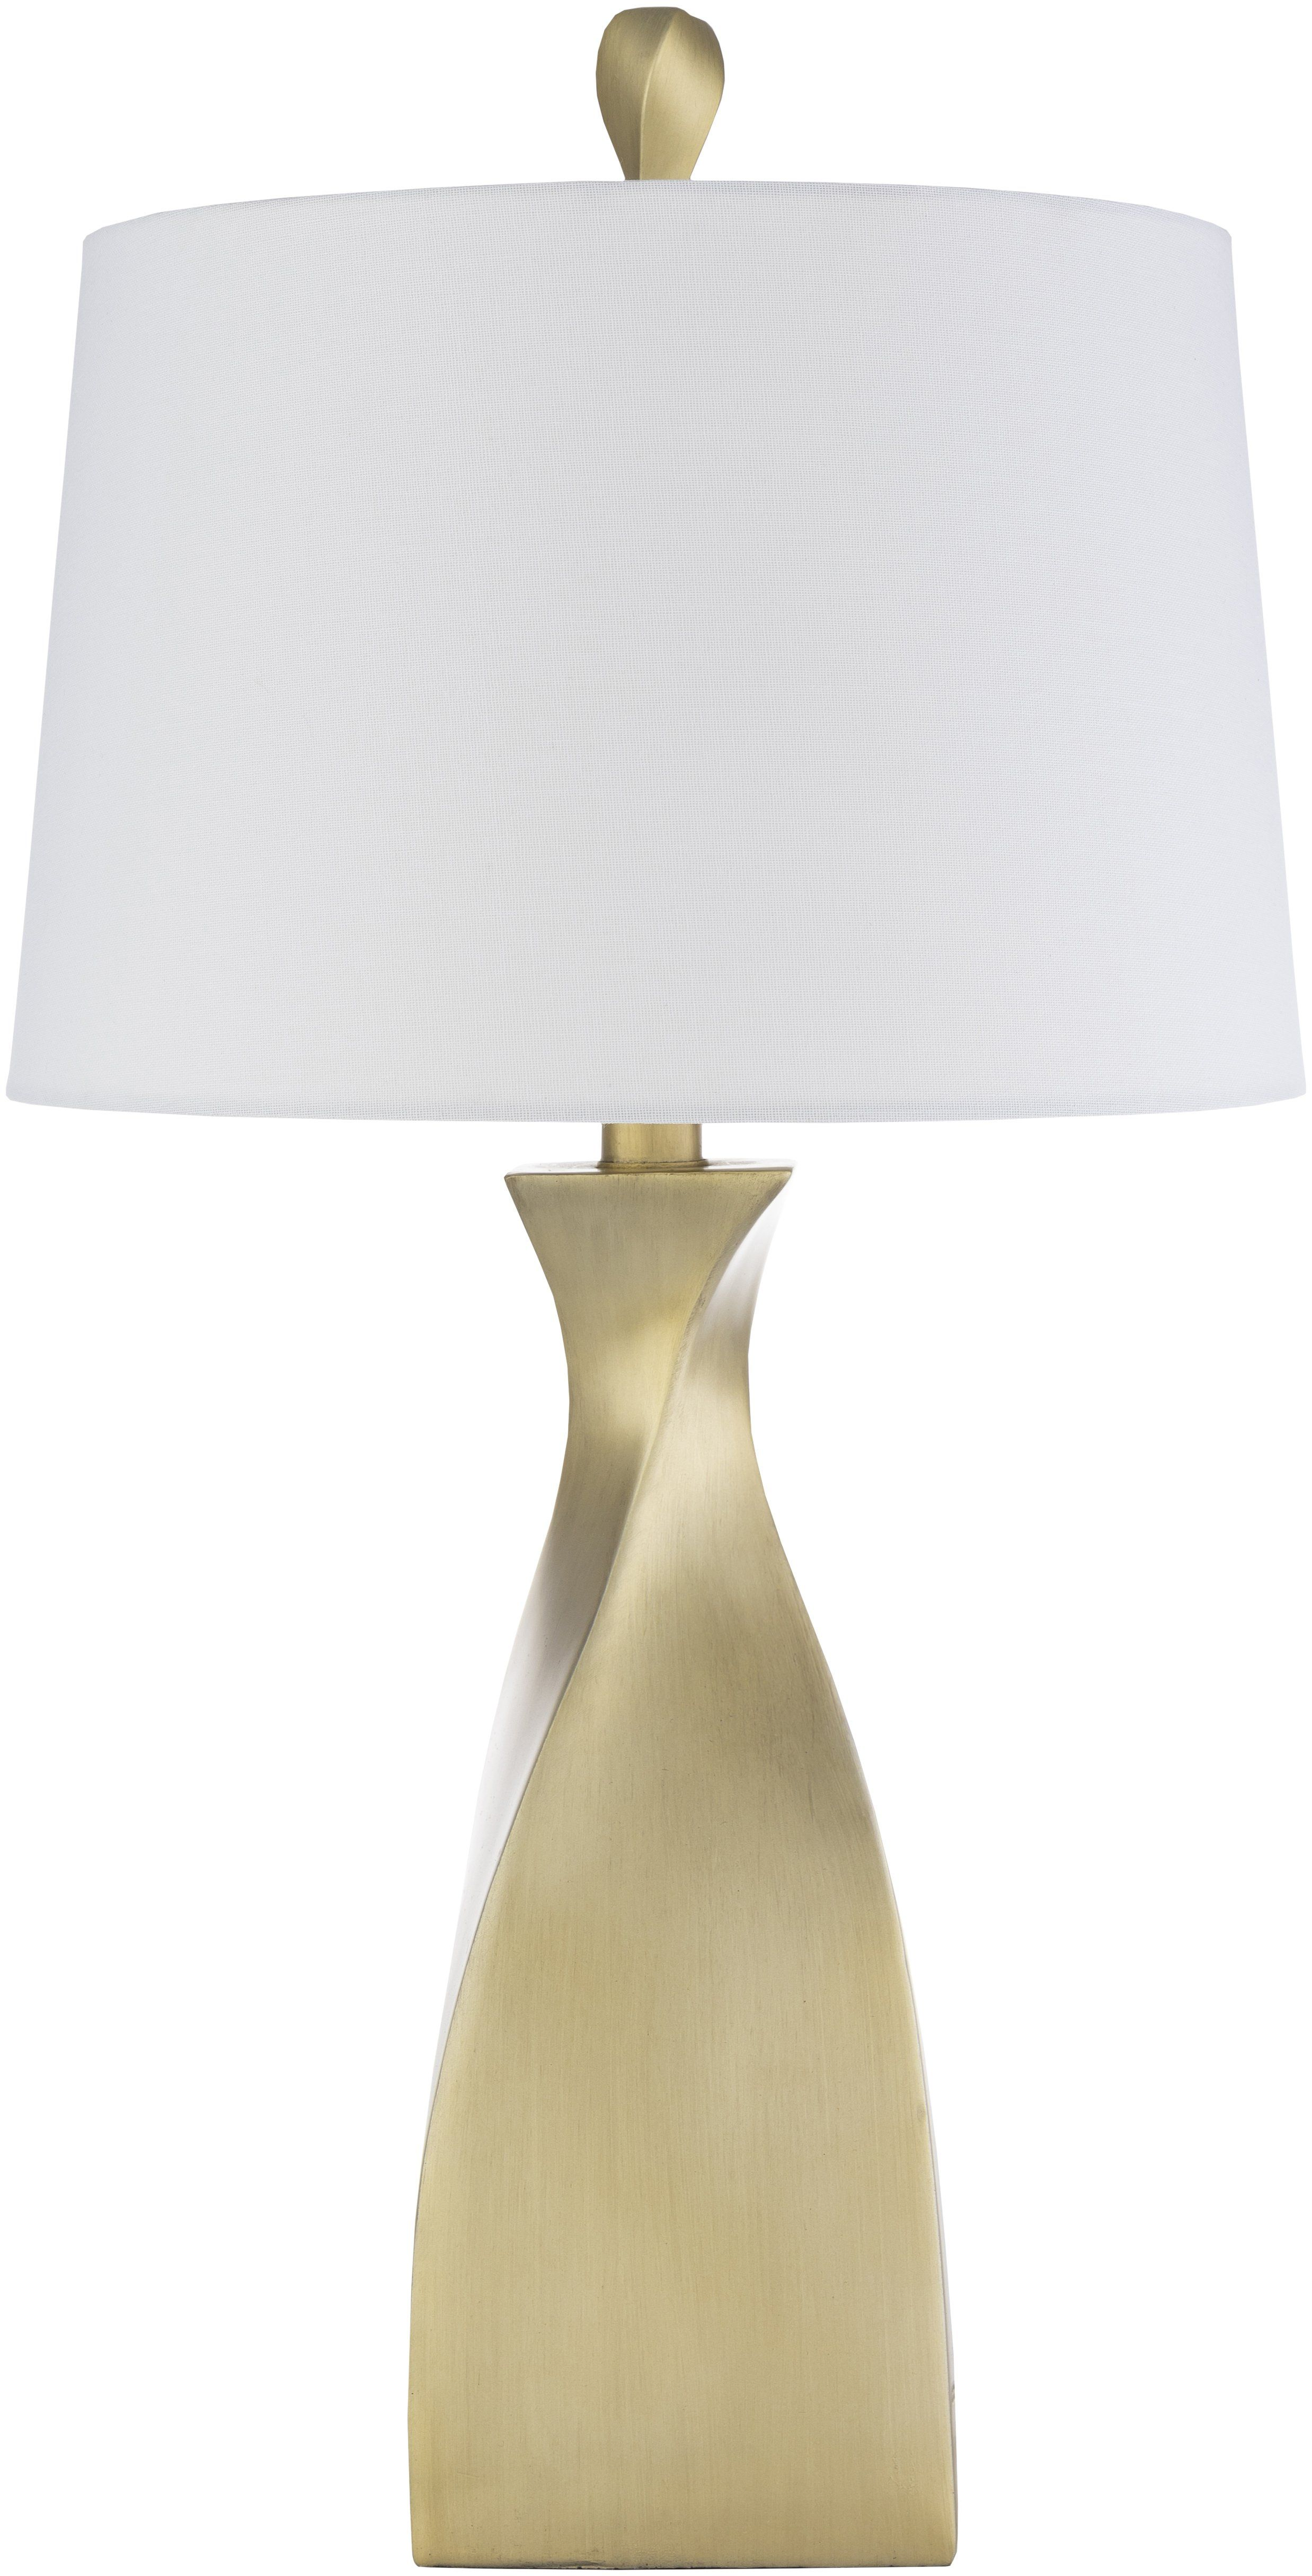 Stylecraft 22 In Solid Gold Table Lamp With Brussels Off White Hardback Fabric Shade L25866cds The Home Depot In 2021 Gold Table Lamp Gold Metal Table Lamp